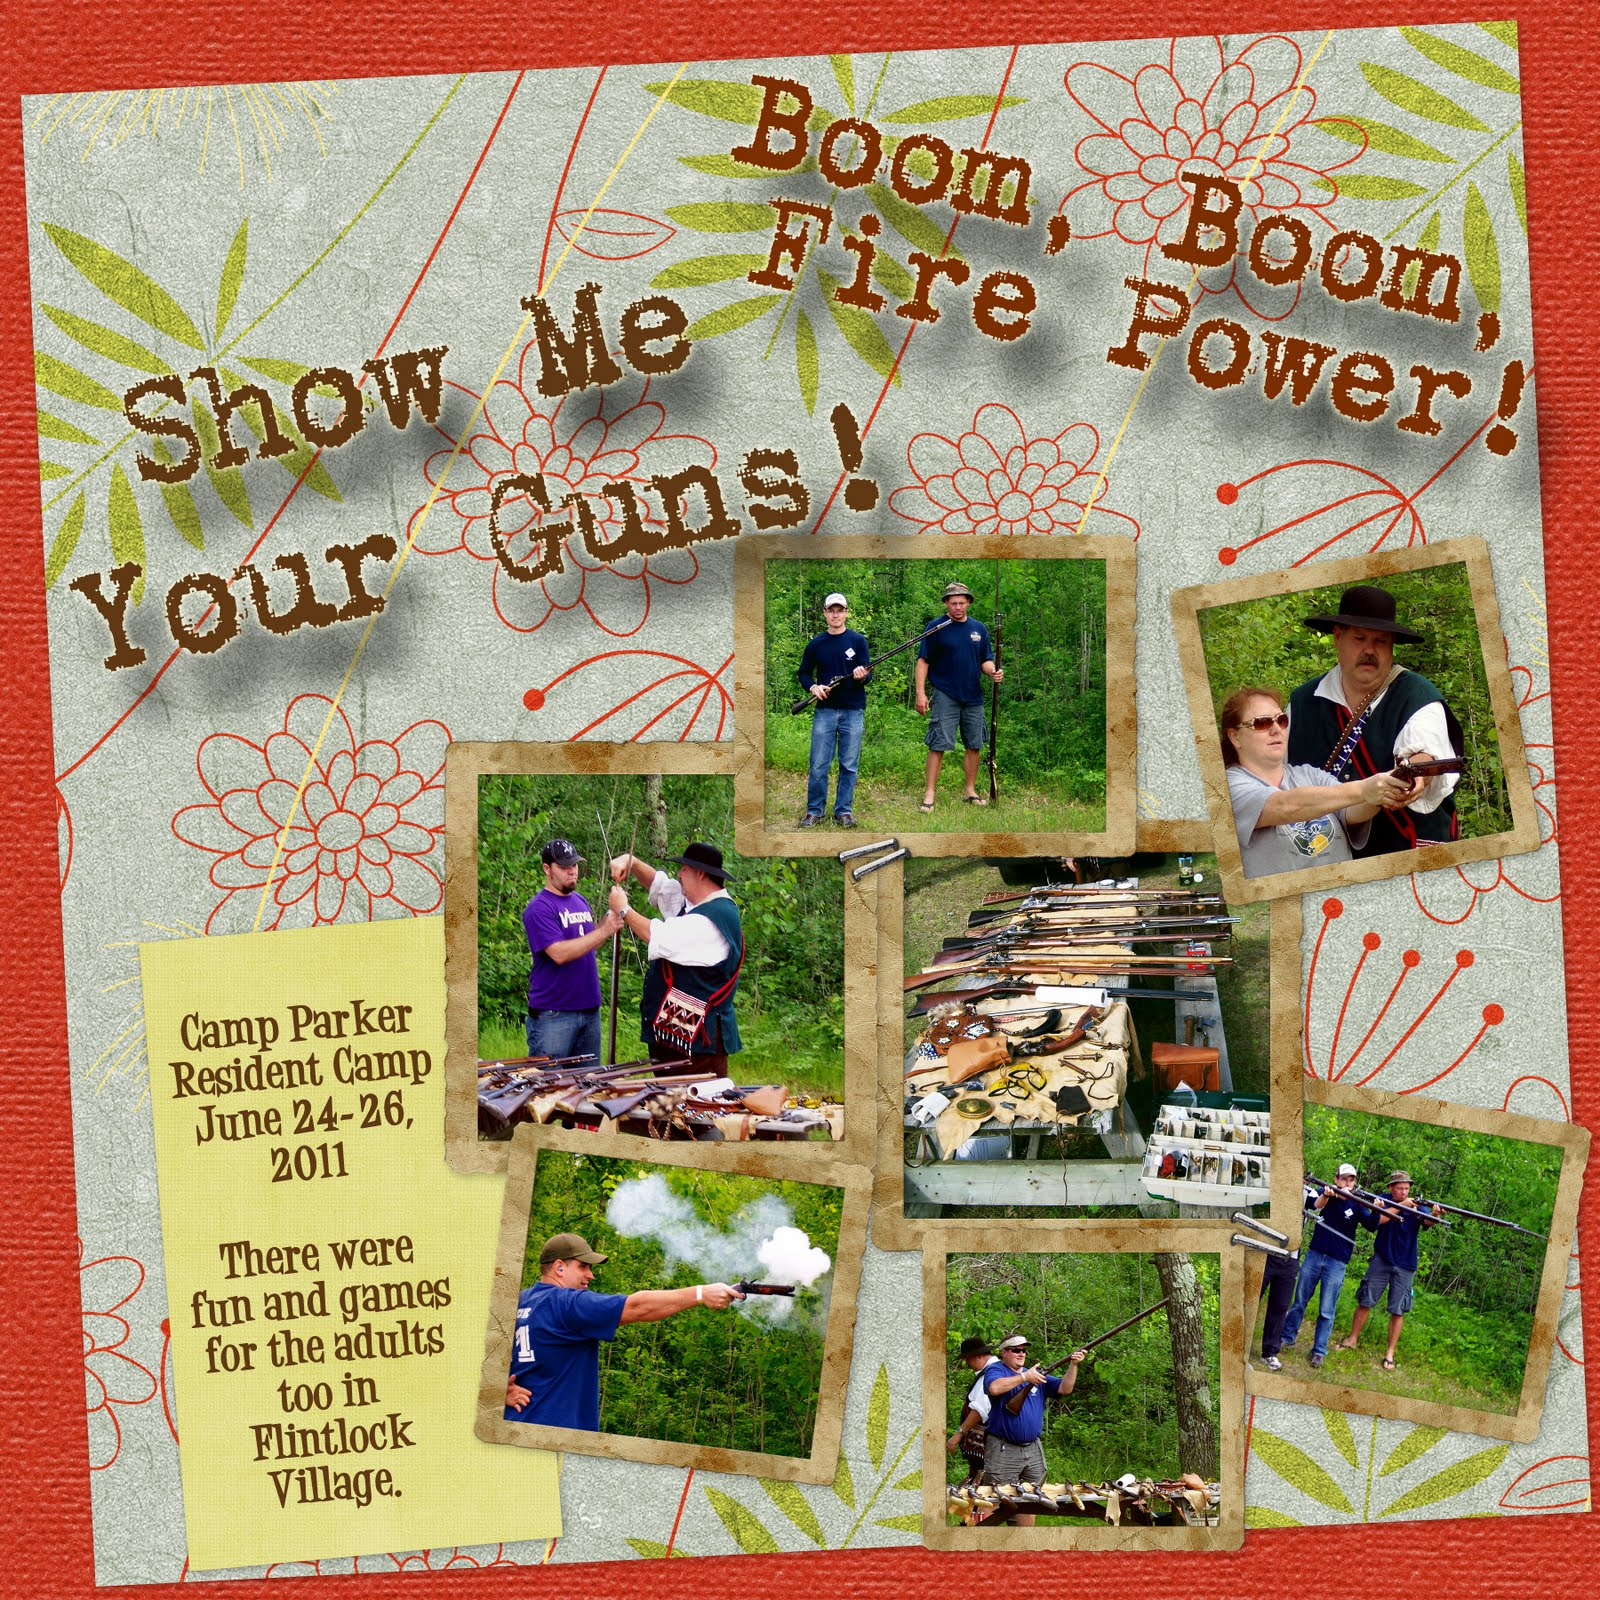 Girl scout scrapbook ideas - 97 Best Images About Eagle Scout Coh Ideas On Pinterest Eagle Scout Cake Boy Scouts And Eagle Scout Ceremony